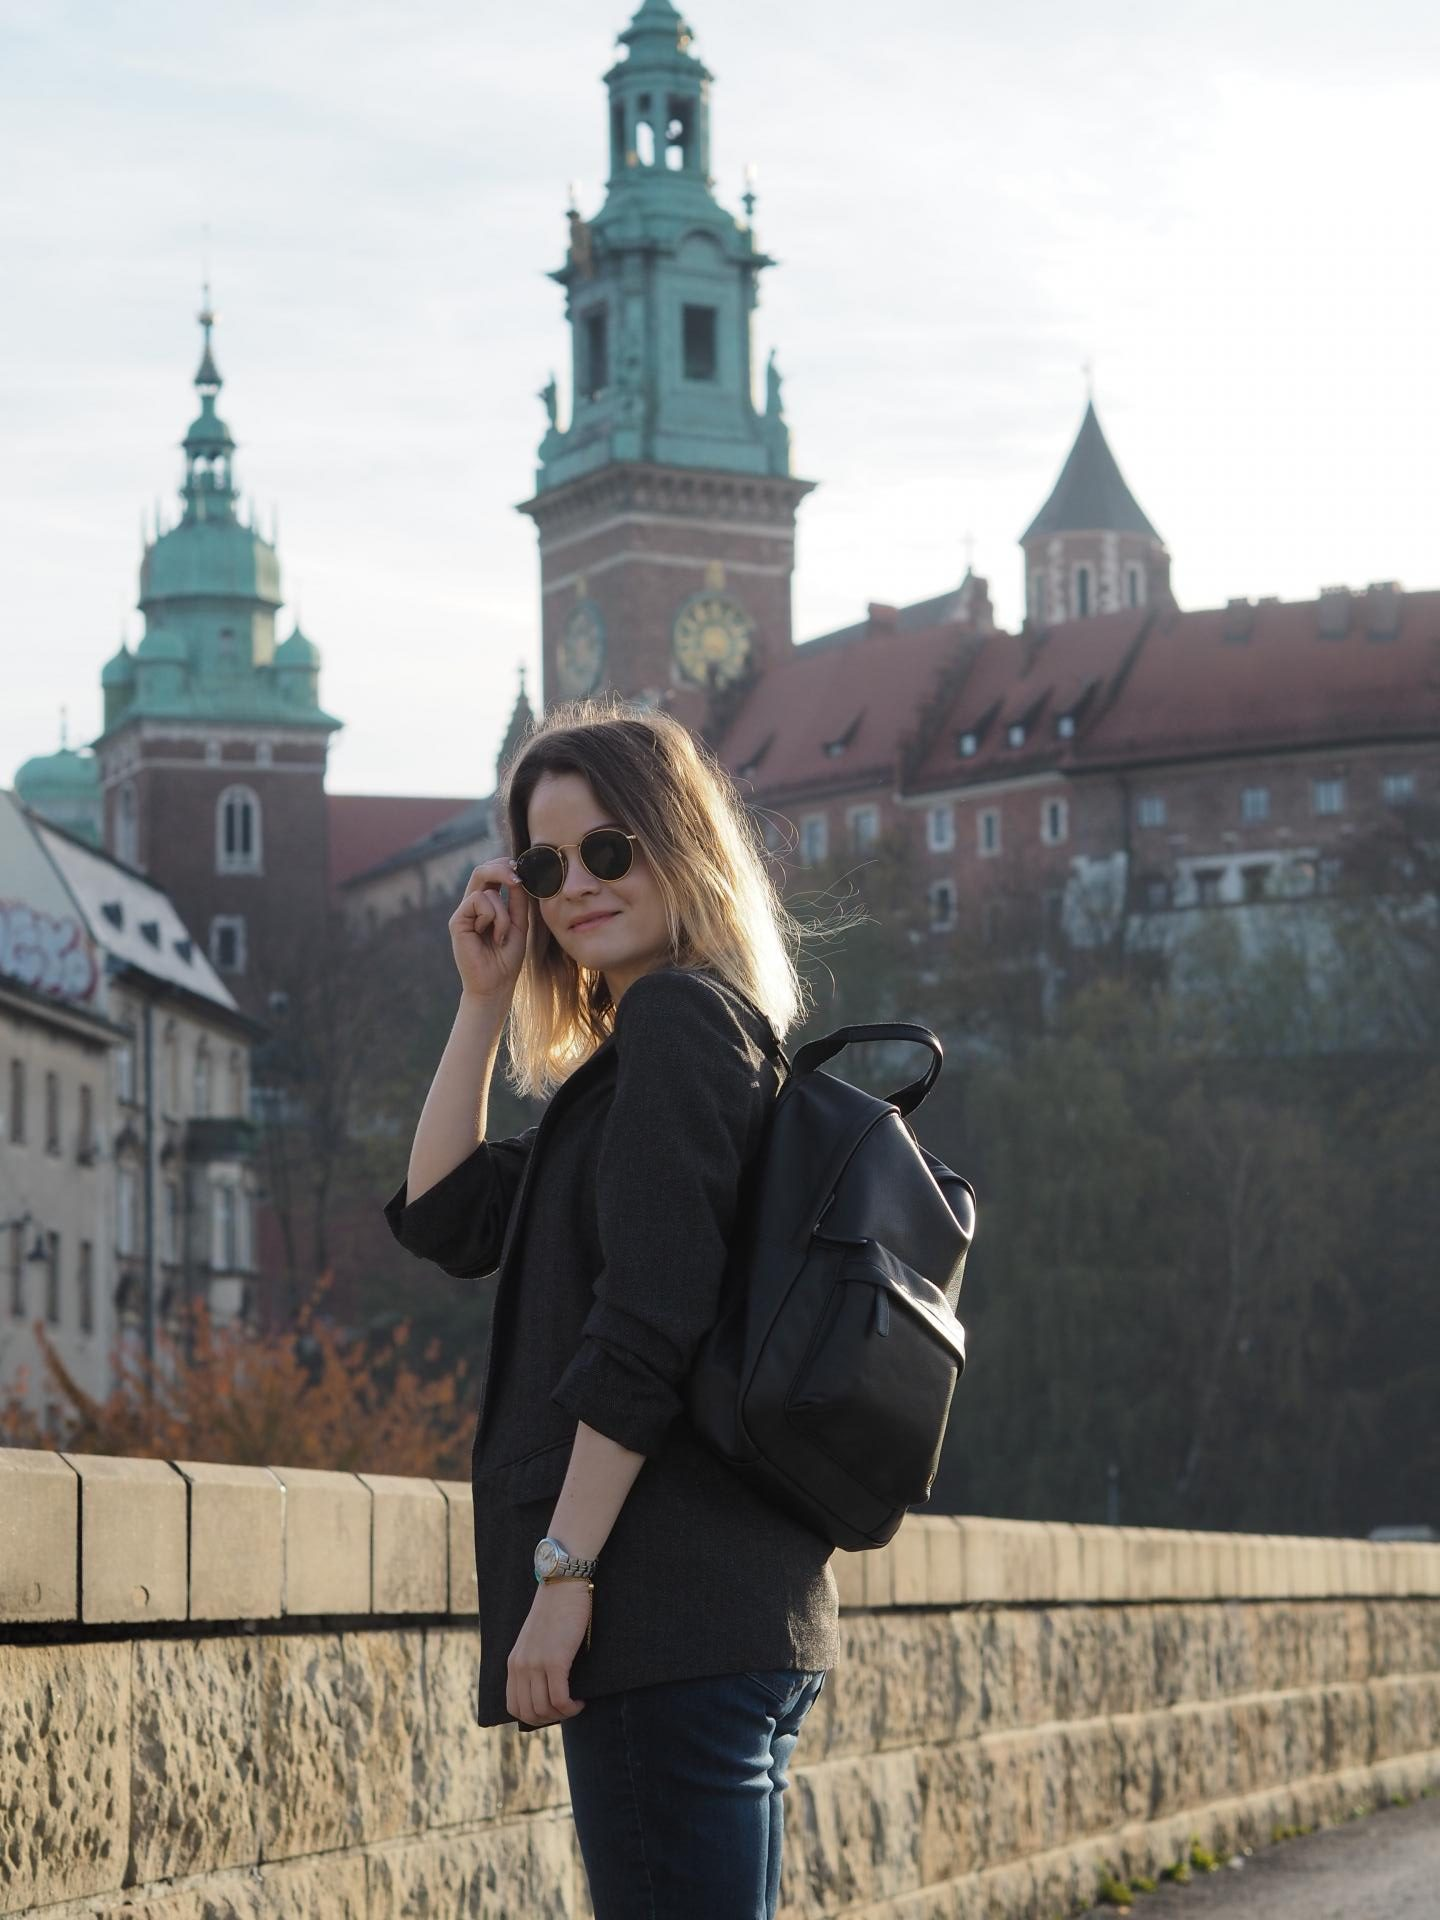 A City Break to Krakow, Poland: Wawel Castle